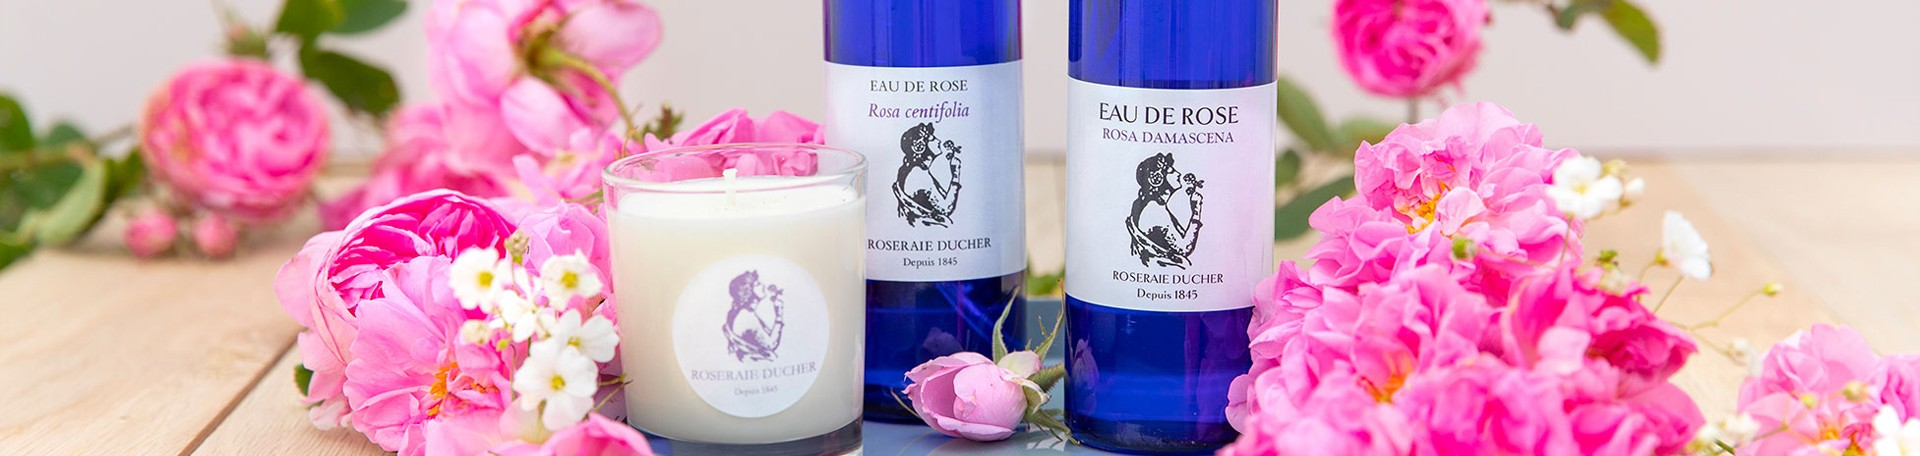 Products made from rose to the Rosarian Ducher